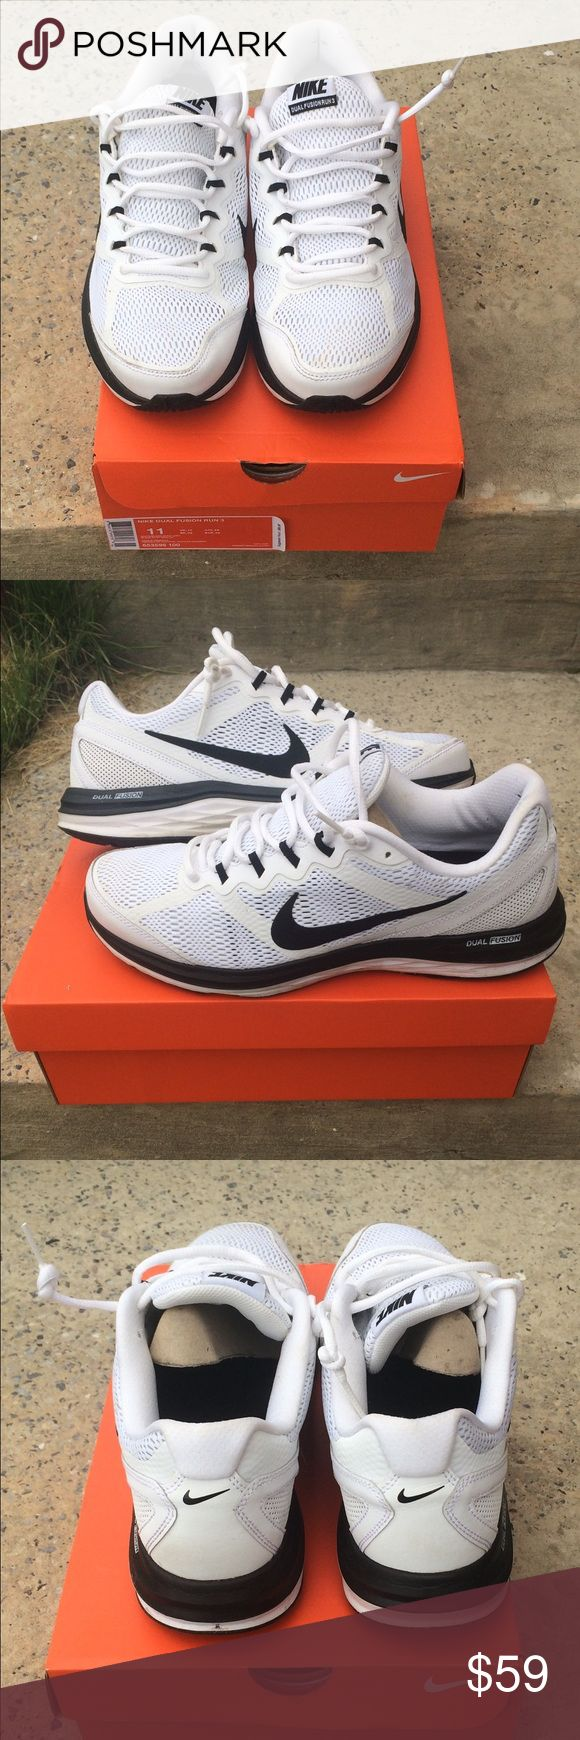 Nike Dual Fusion Run 3 Running Shoes Size 11 Gently worn pair of men's Nike Dual Fusion 3 Running Sneakers. Shoes feature the patented dual fusion midsole for maximum comfort and shock prevention in every step. Very lightweight shoes that look great . Mens size 11 Nike Shoes Sneakers